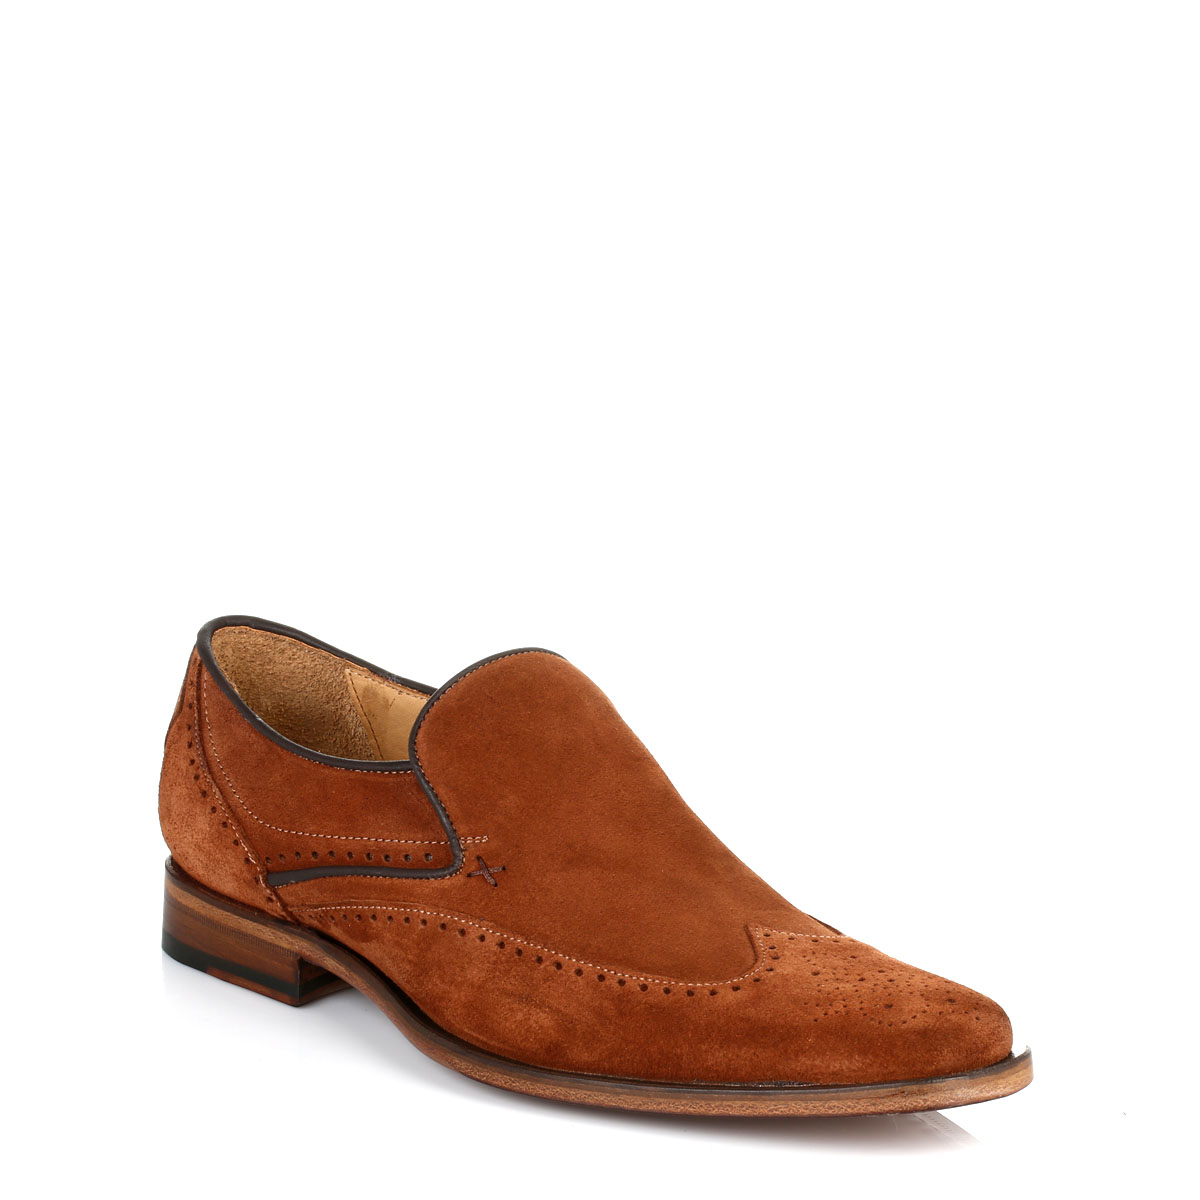 Oliver Sweeney Brown Shoes